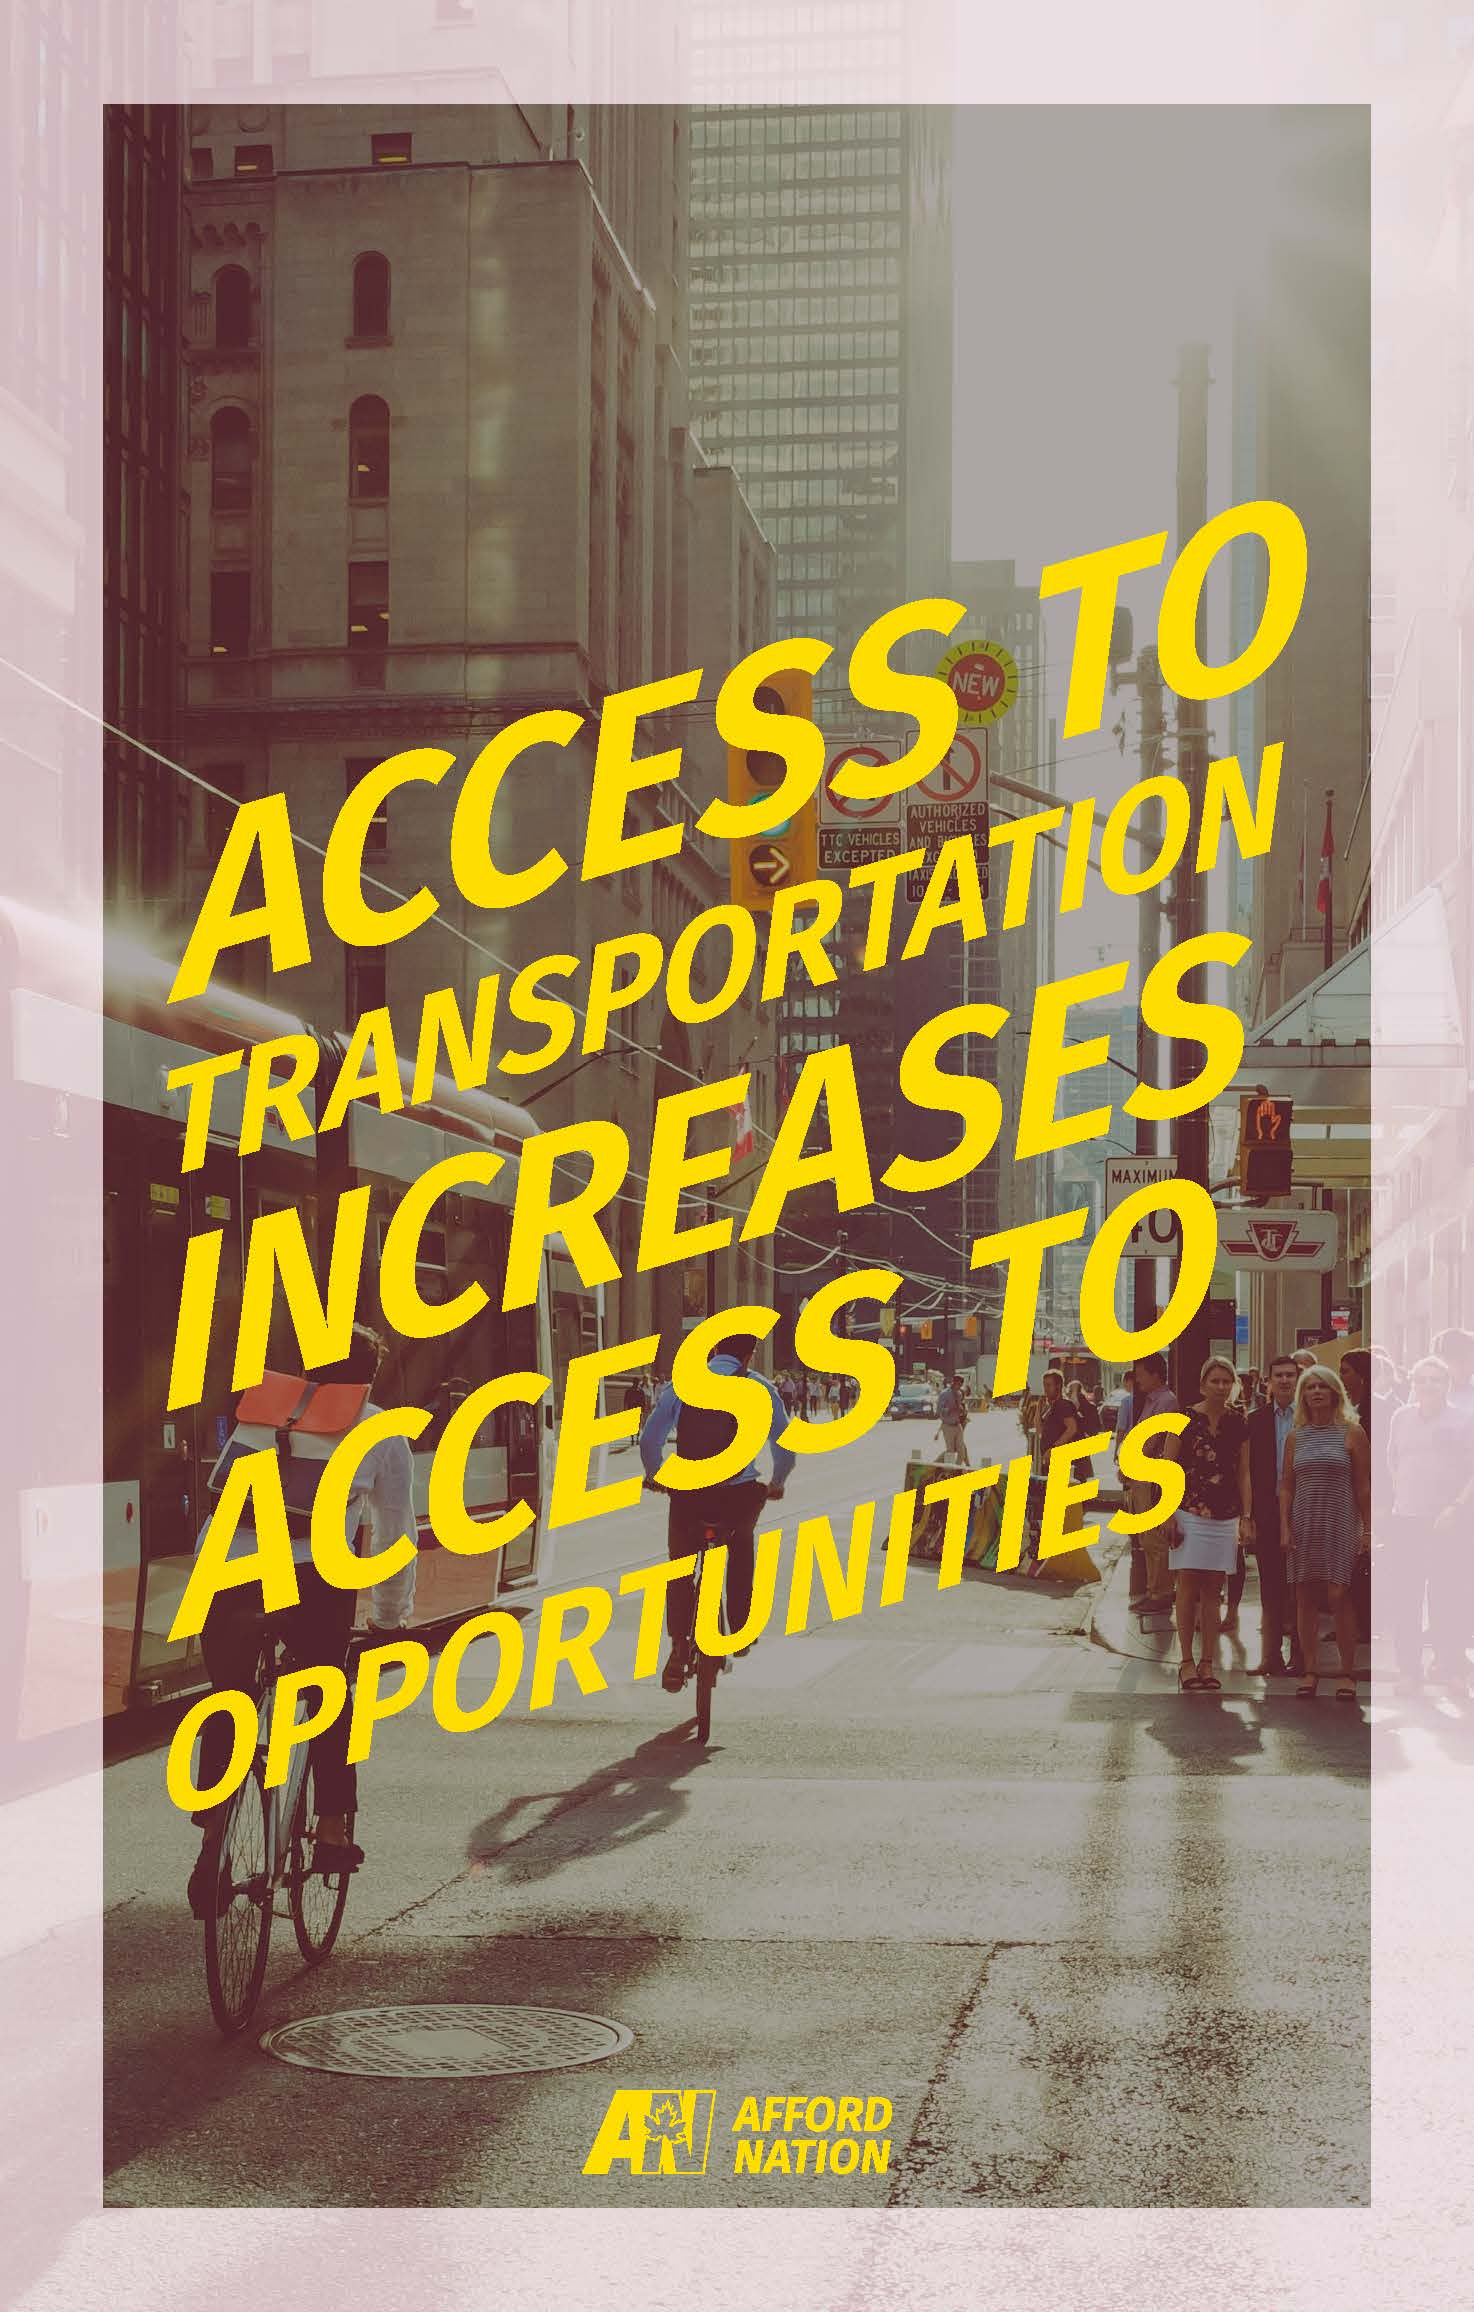 Access to transportation increases access to opportunities